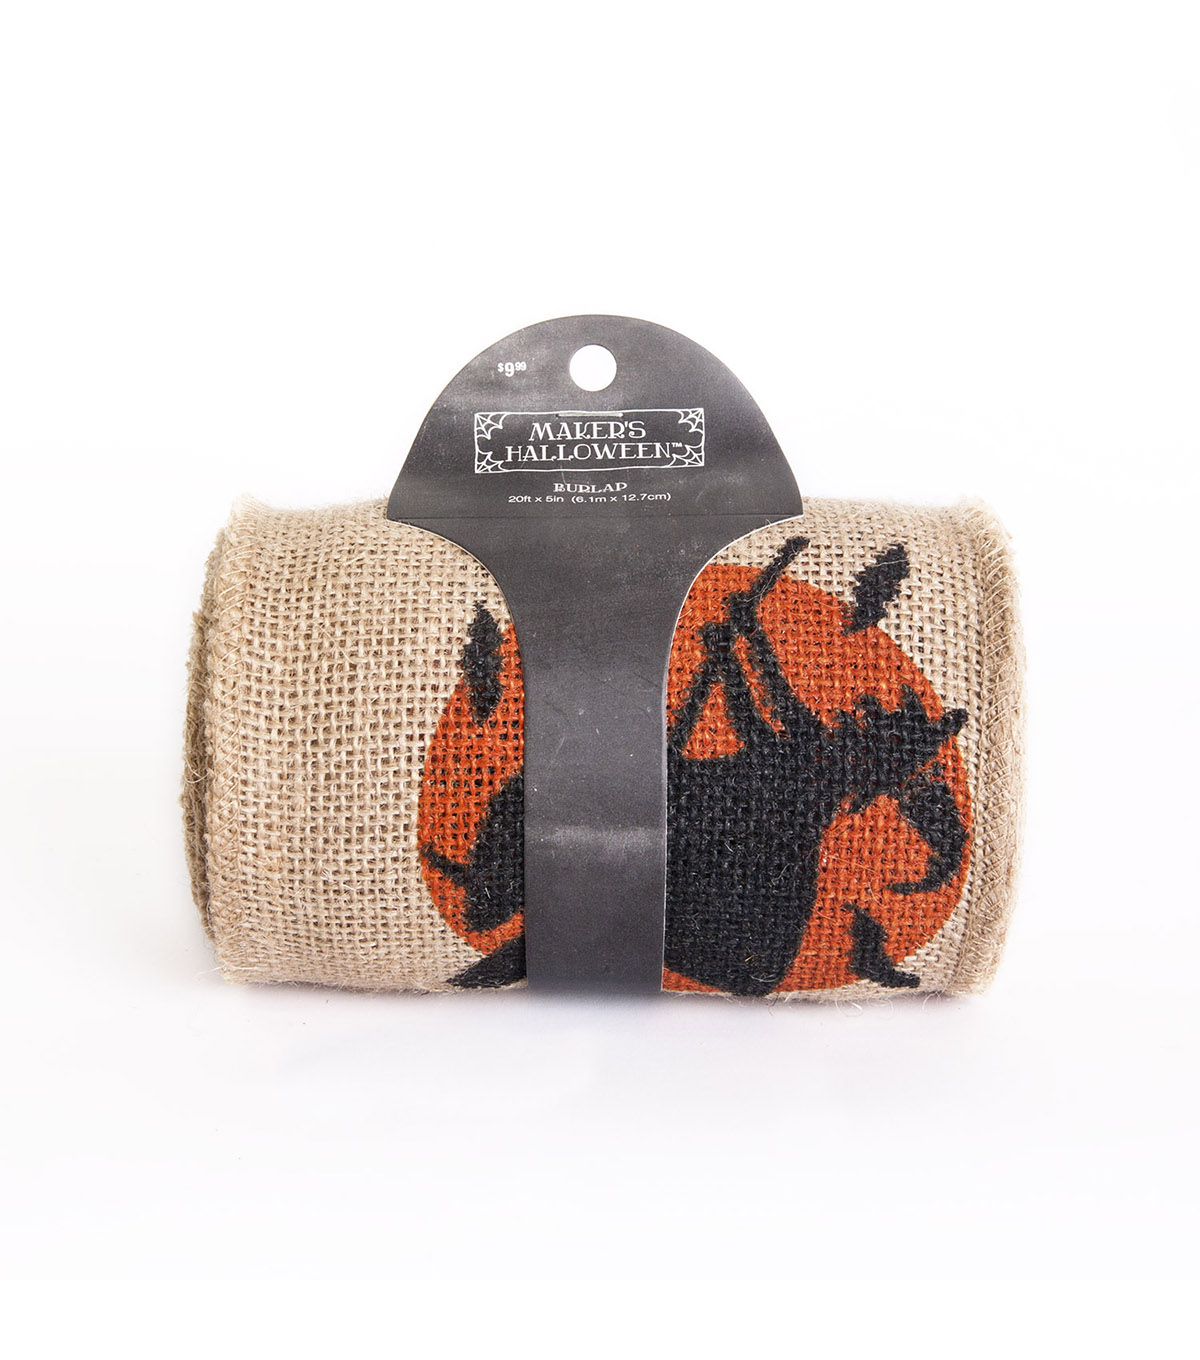 Maker's Halloween Burlap Ribbon 5''x20'-Witch & Bat Print on Natural